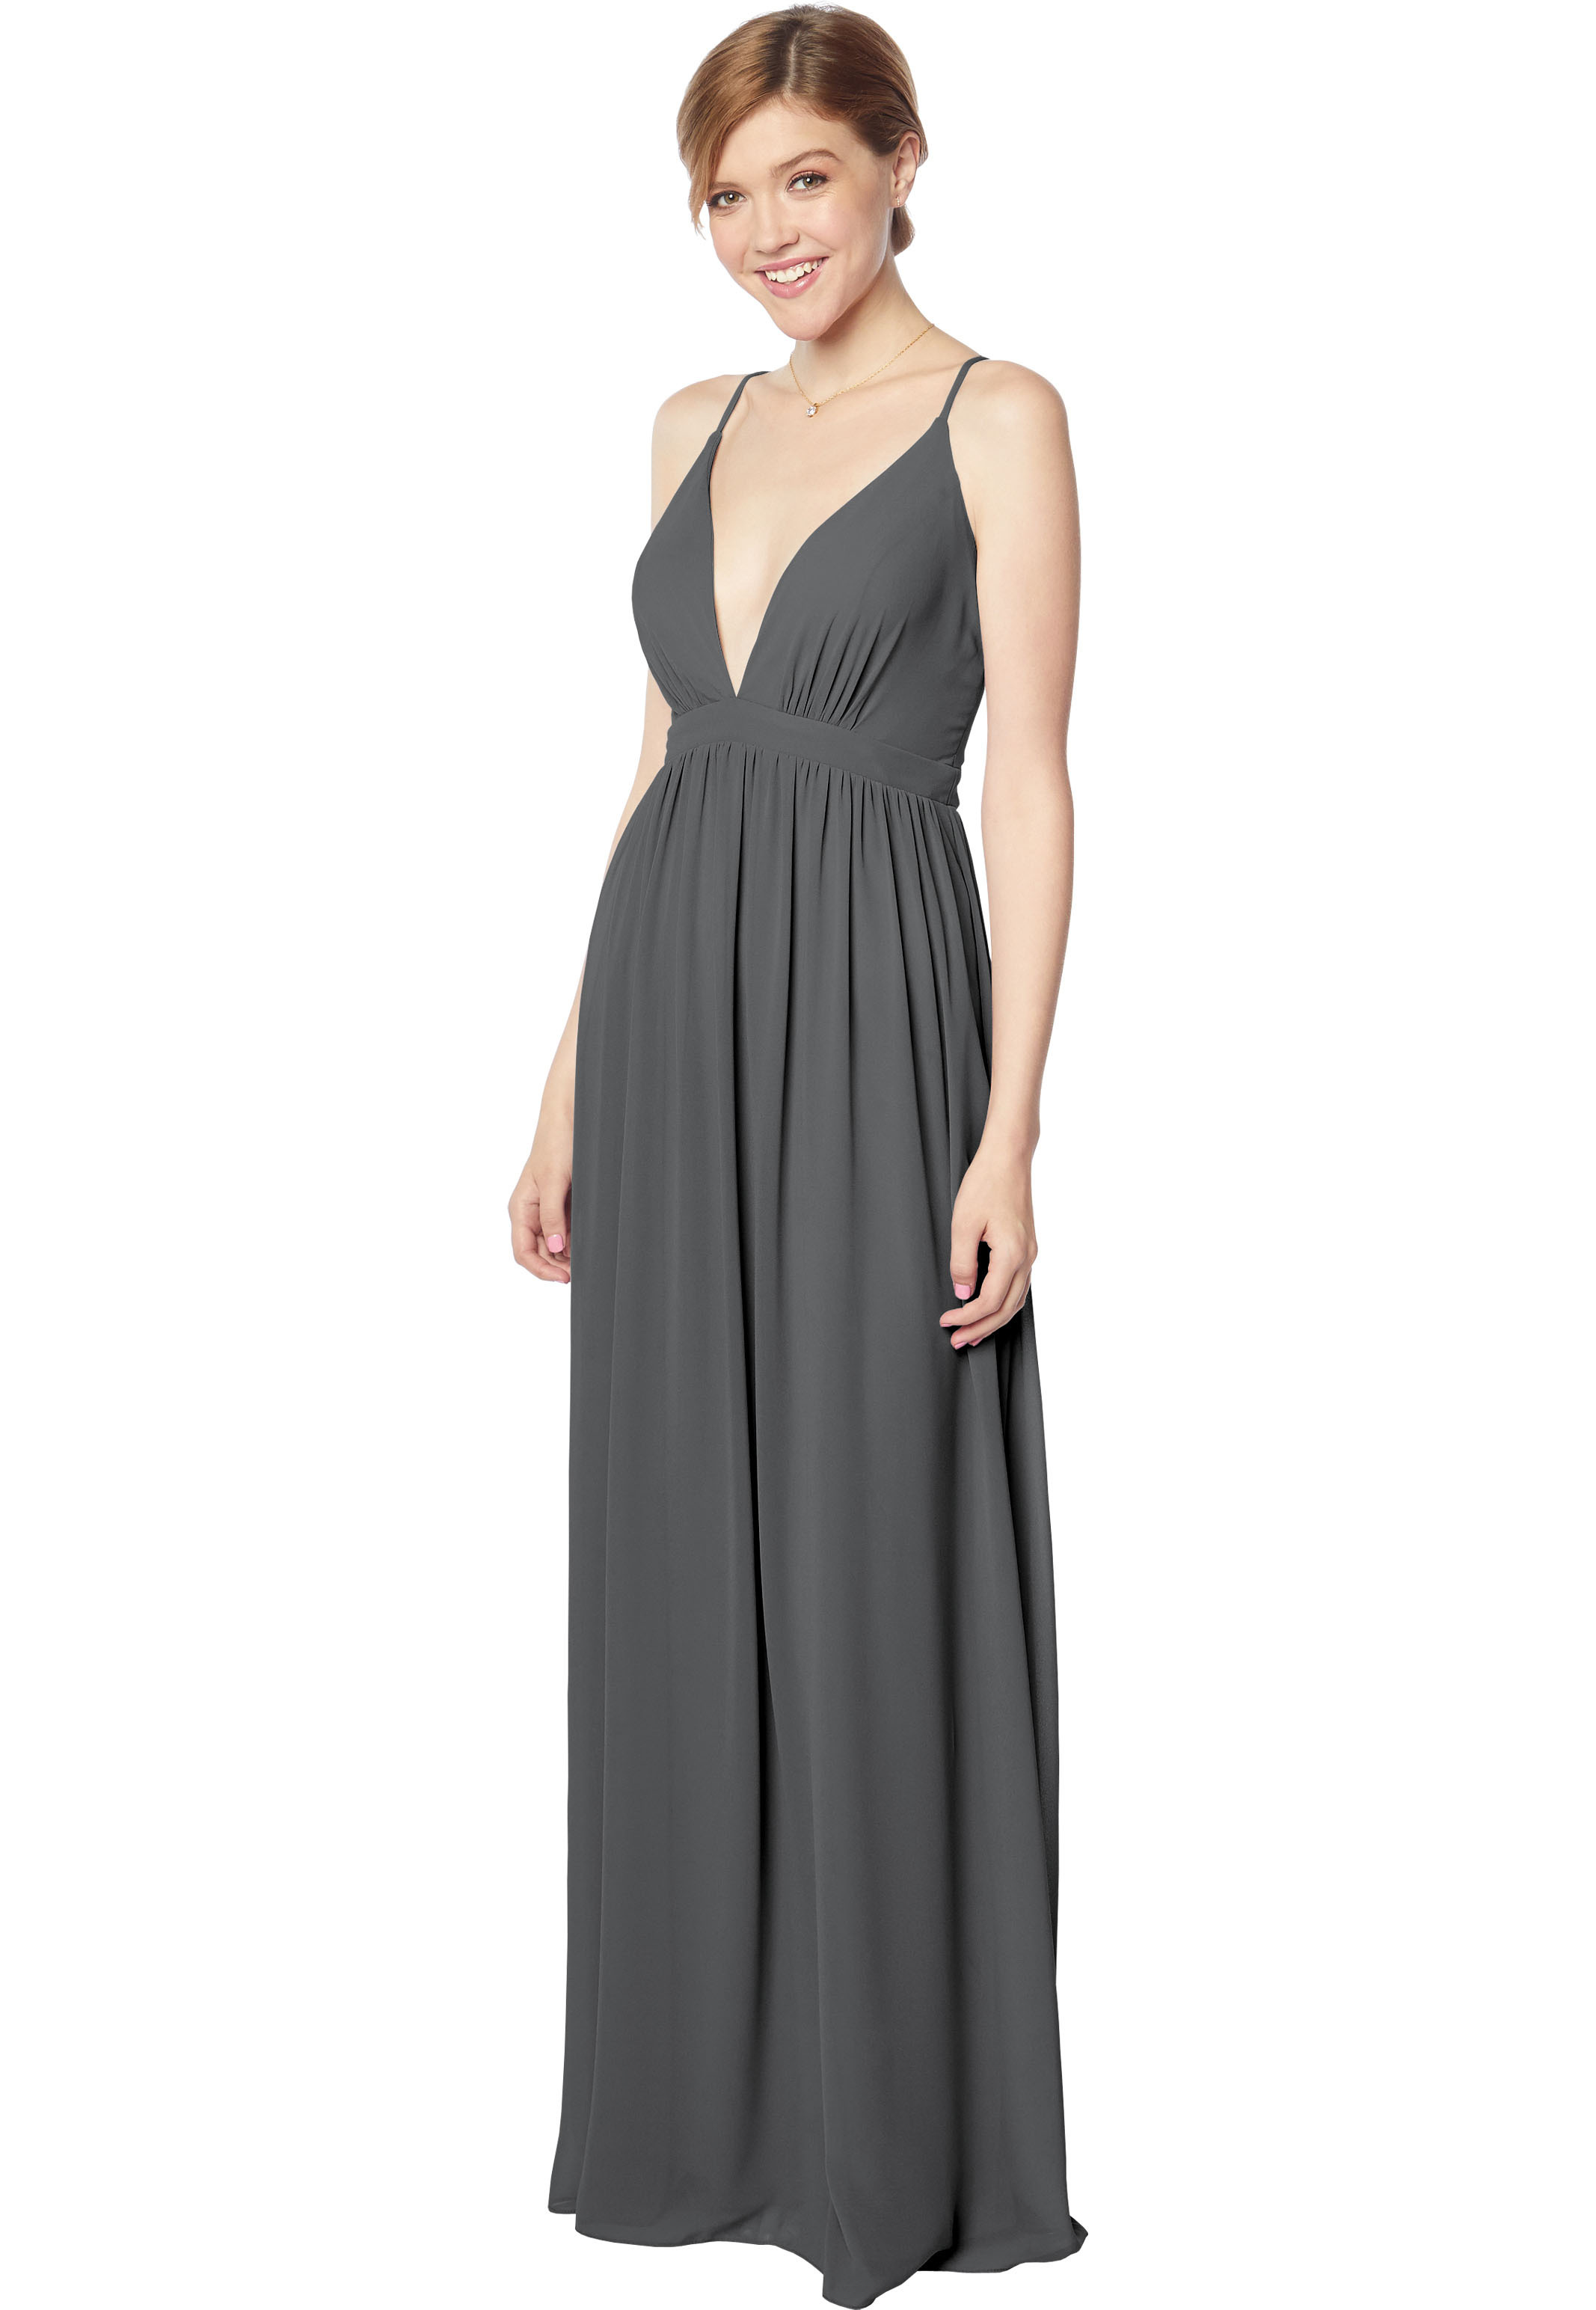 Bill Levkoff CHARCOAL Chiffon V-neck A-line gown, $170.00 Front